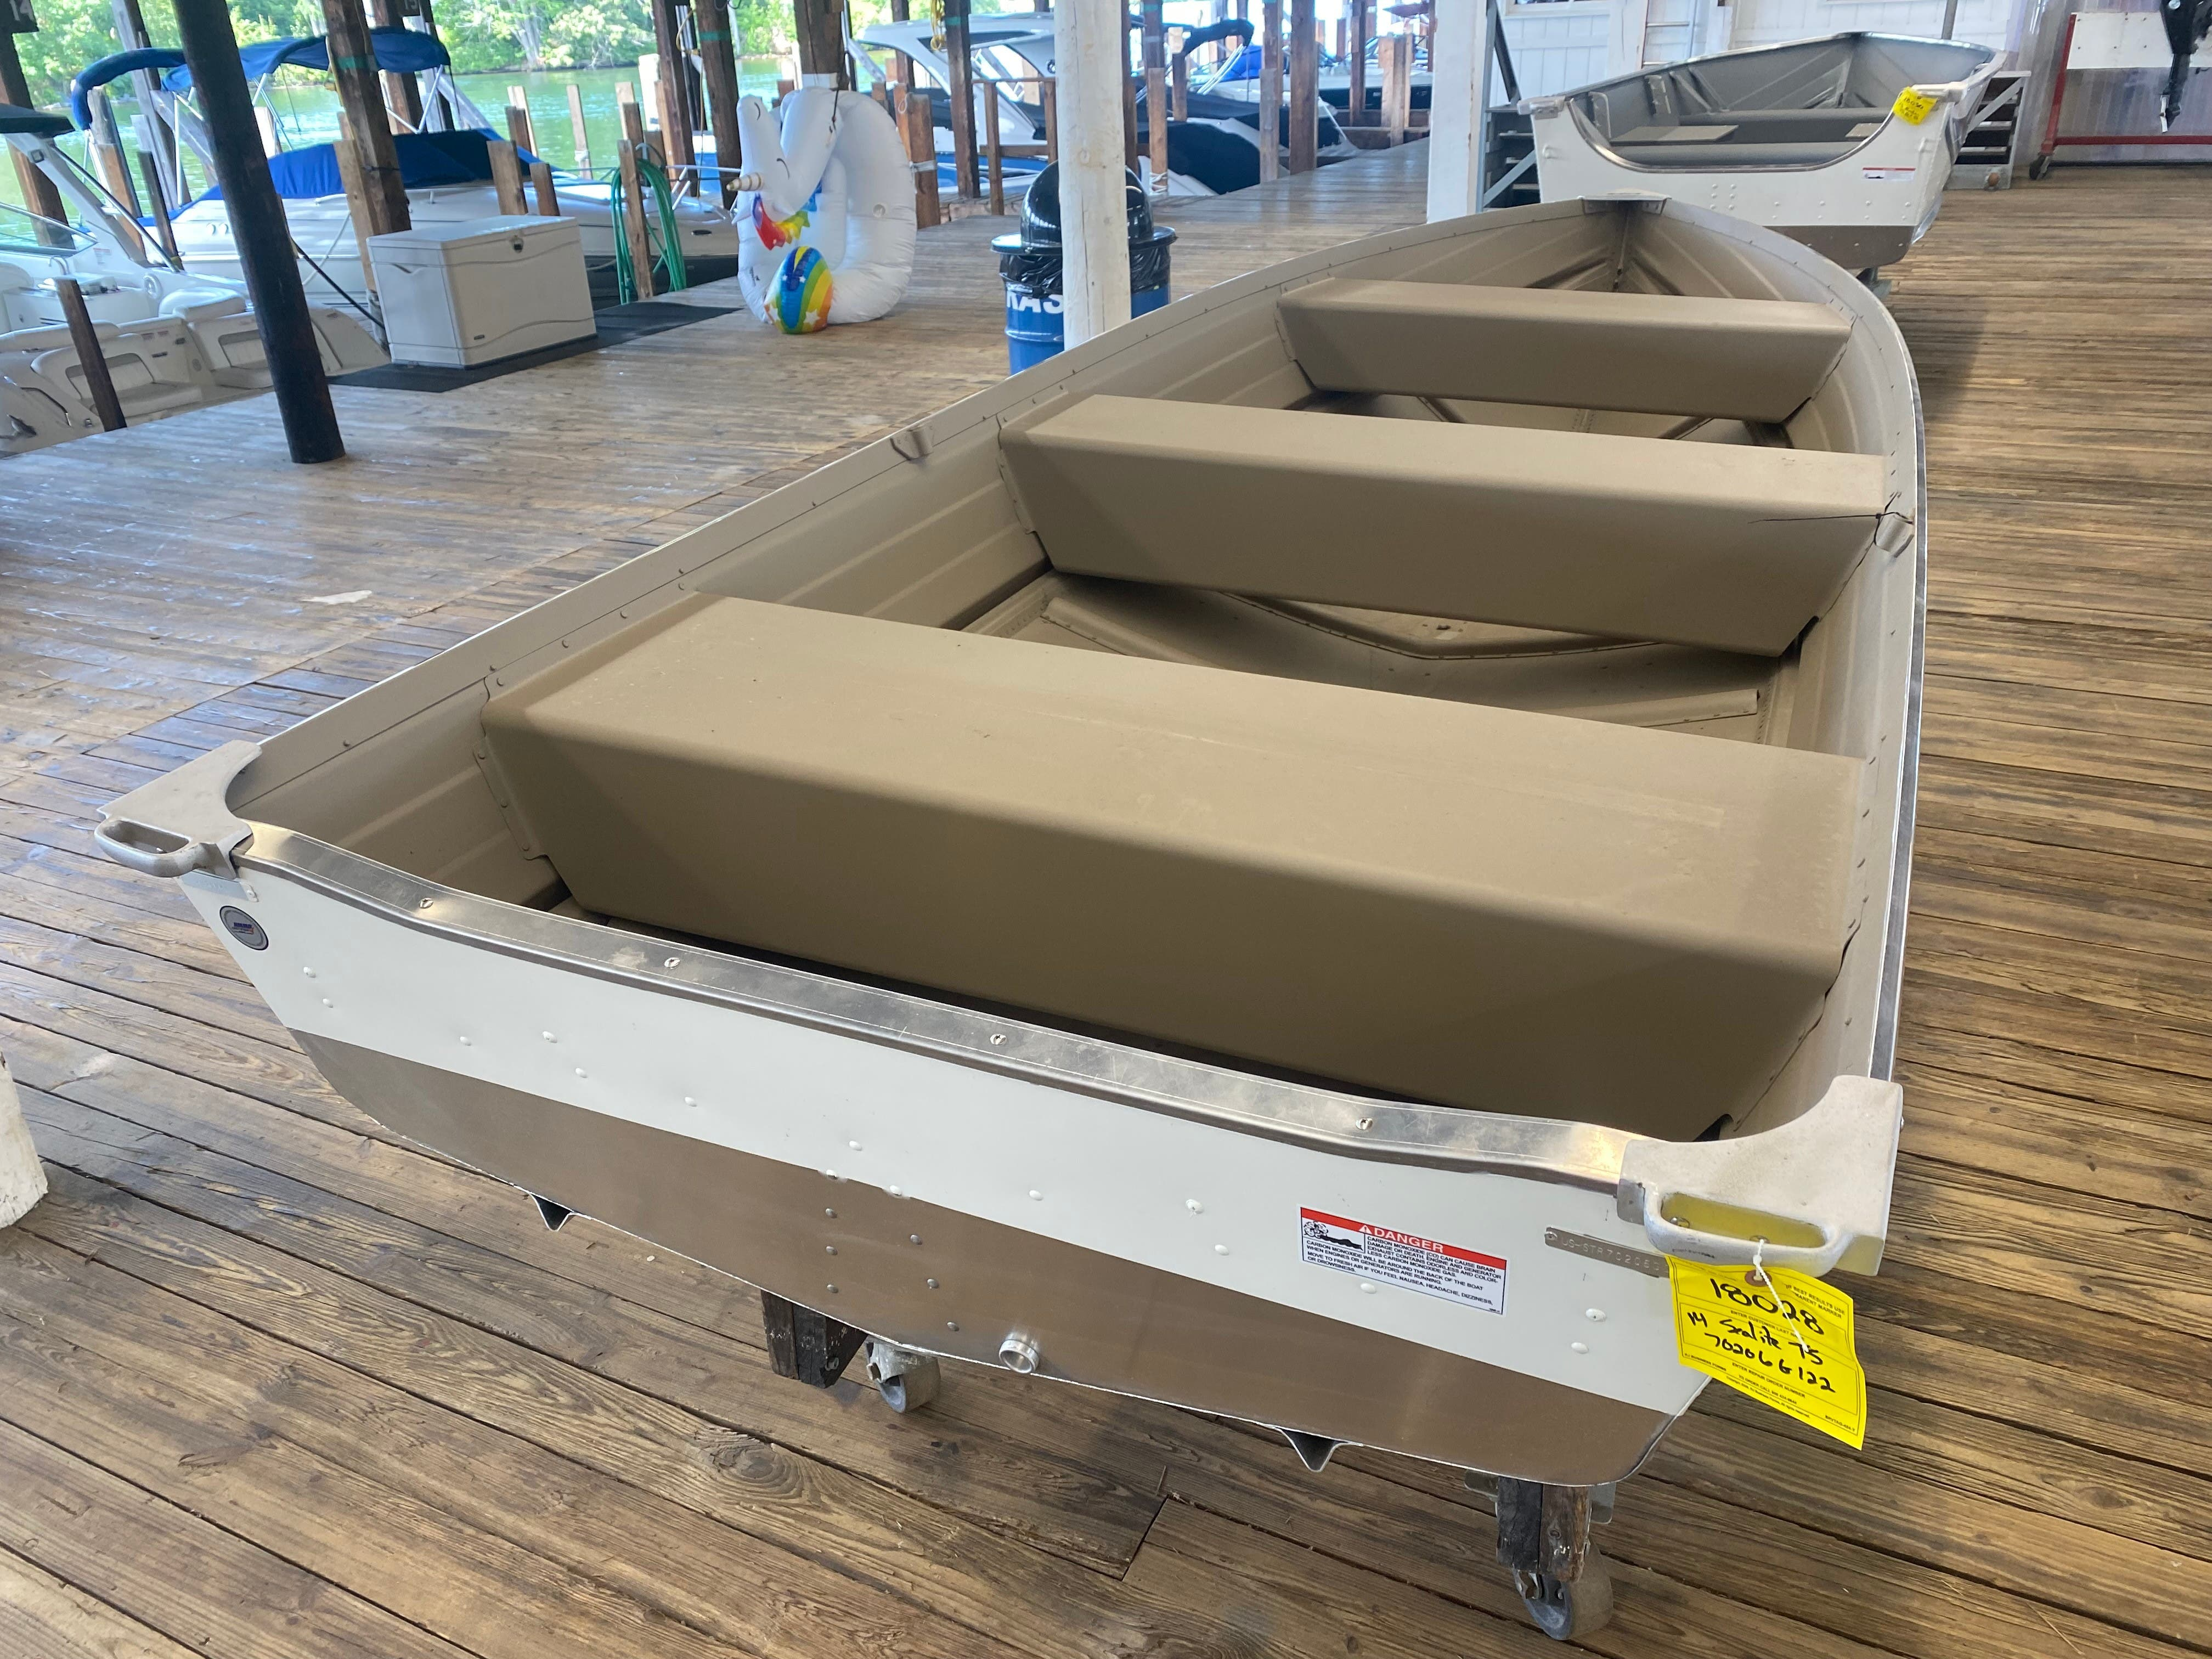 2022 Starcraft boat for sale, model of the boat is 14 SEALITE TS & Image # 5 of 6